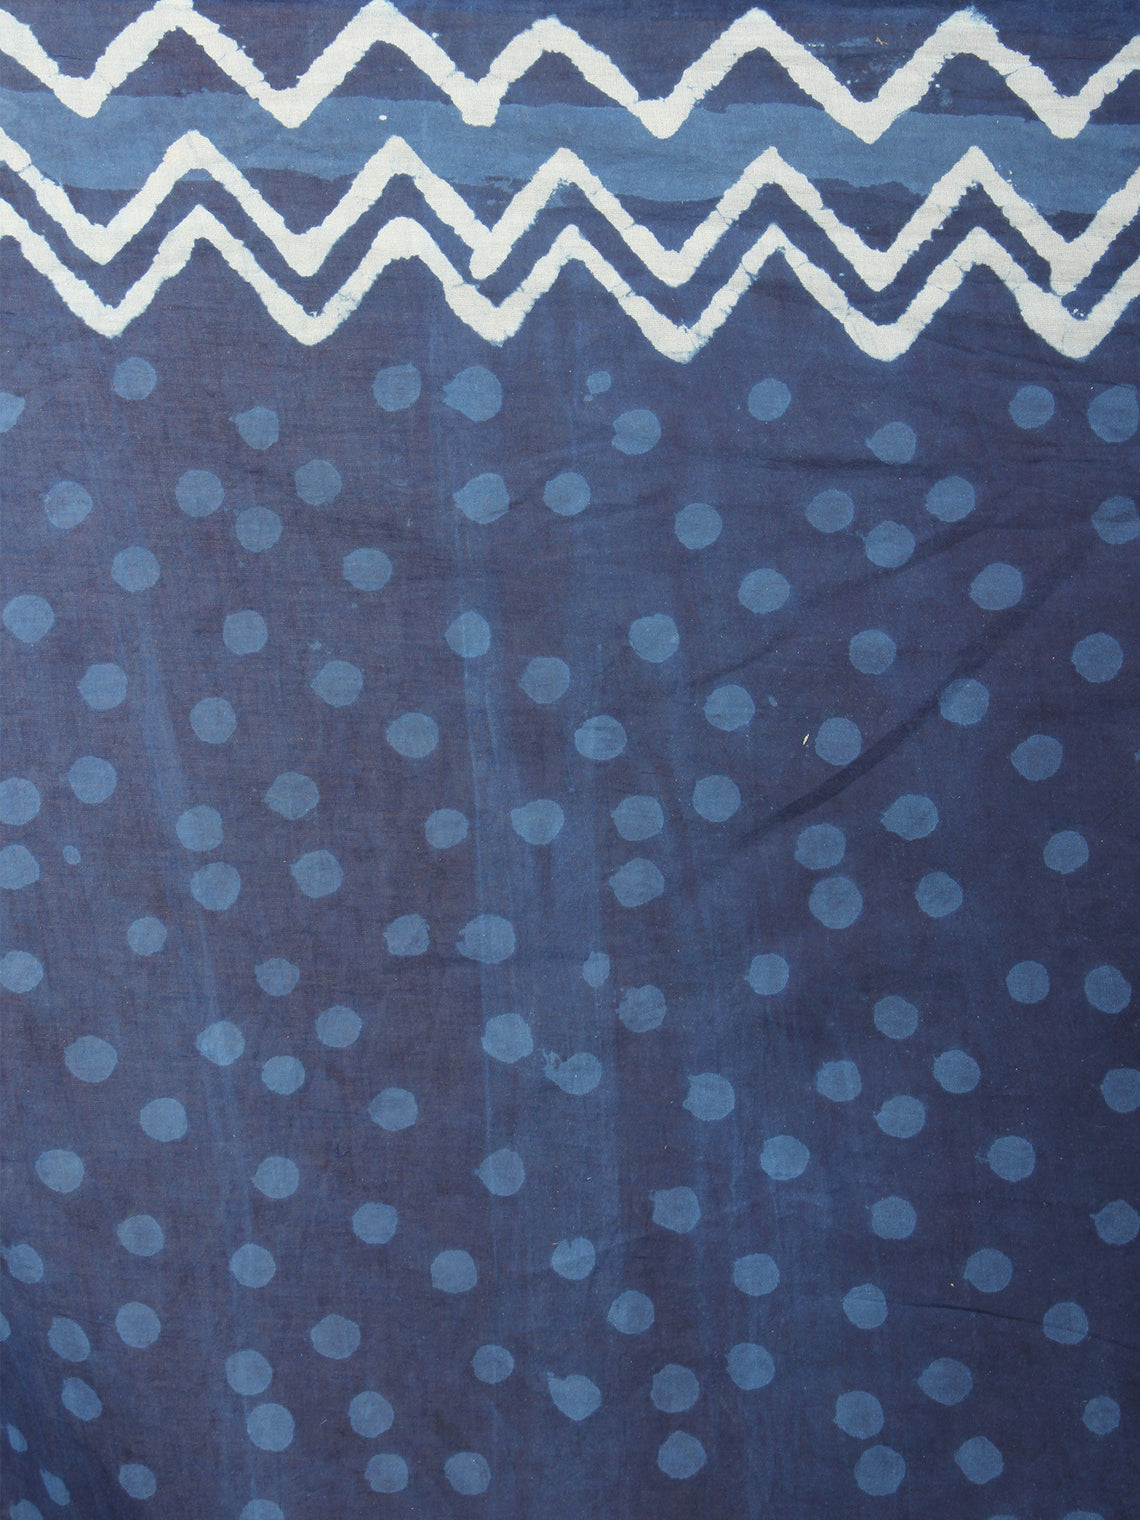 Indigo Ivory Cotton Hand Block Printed Saree - S03170695